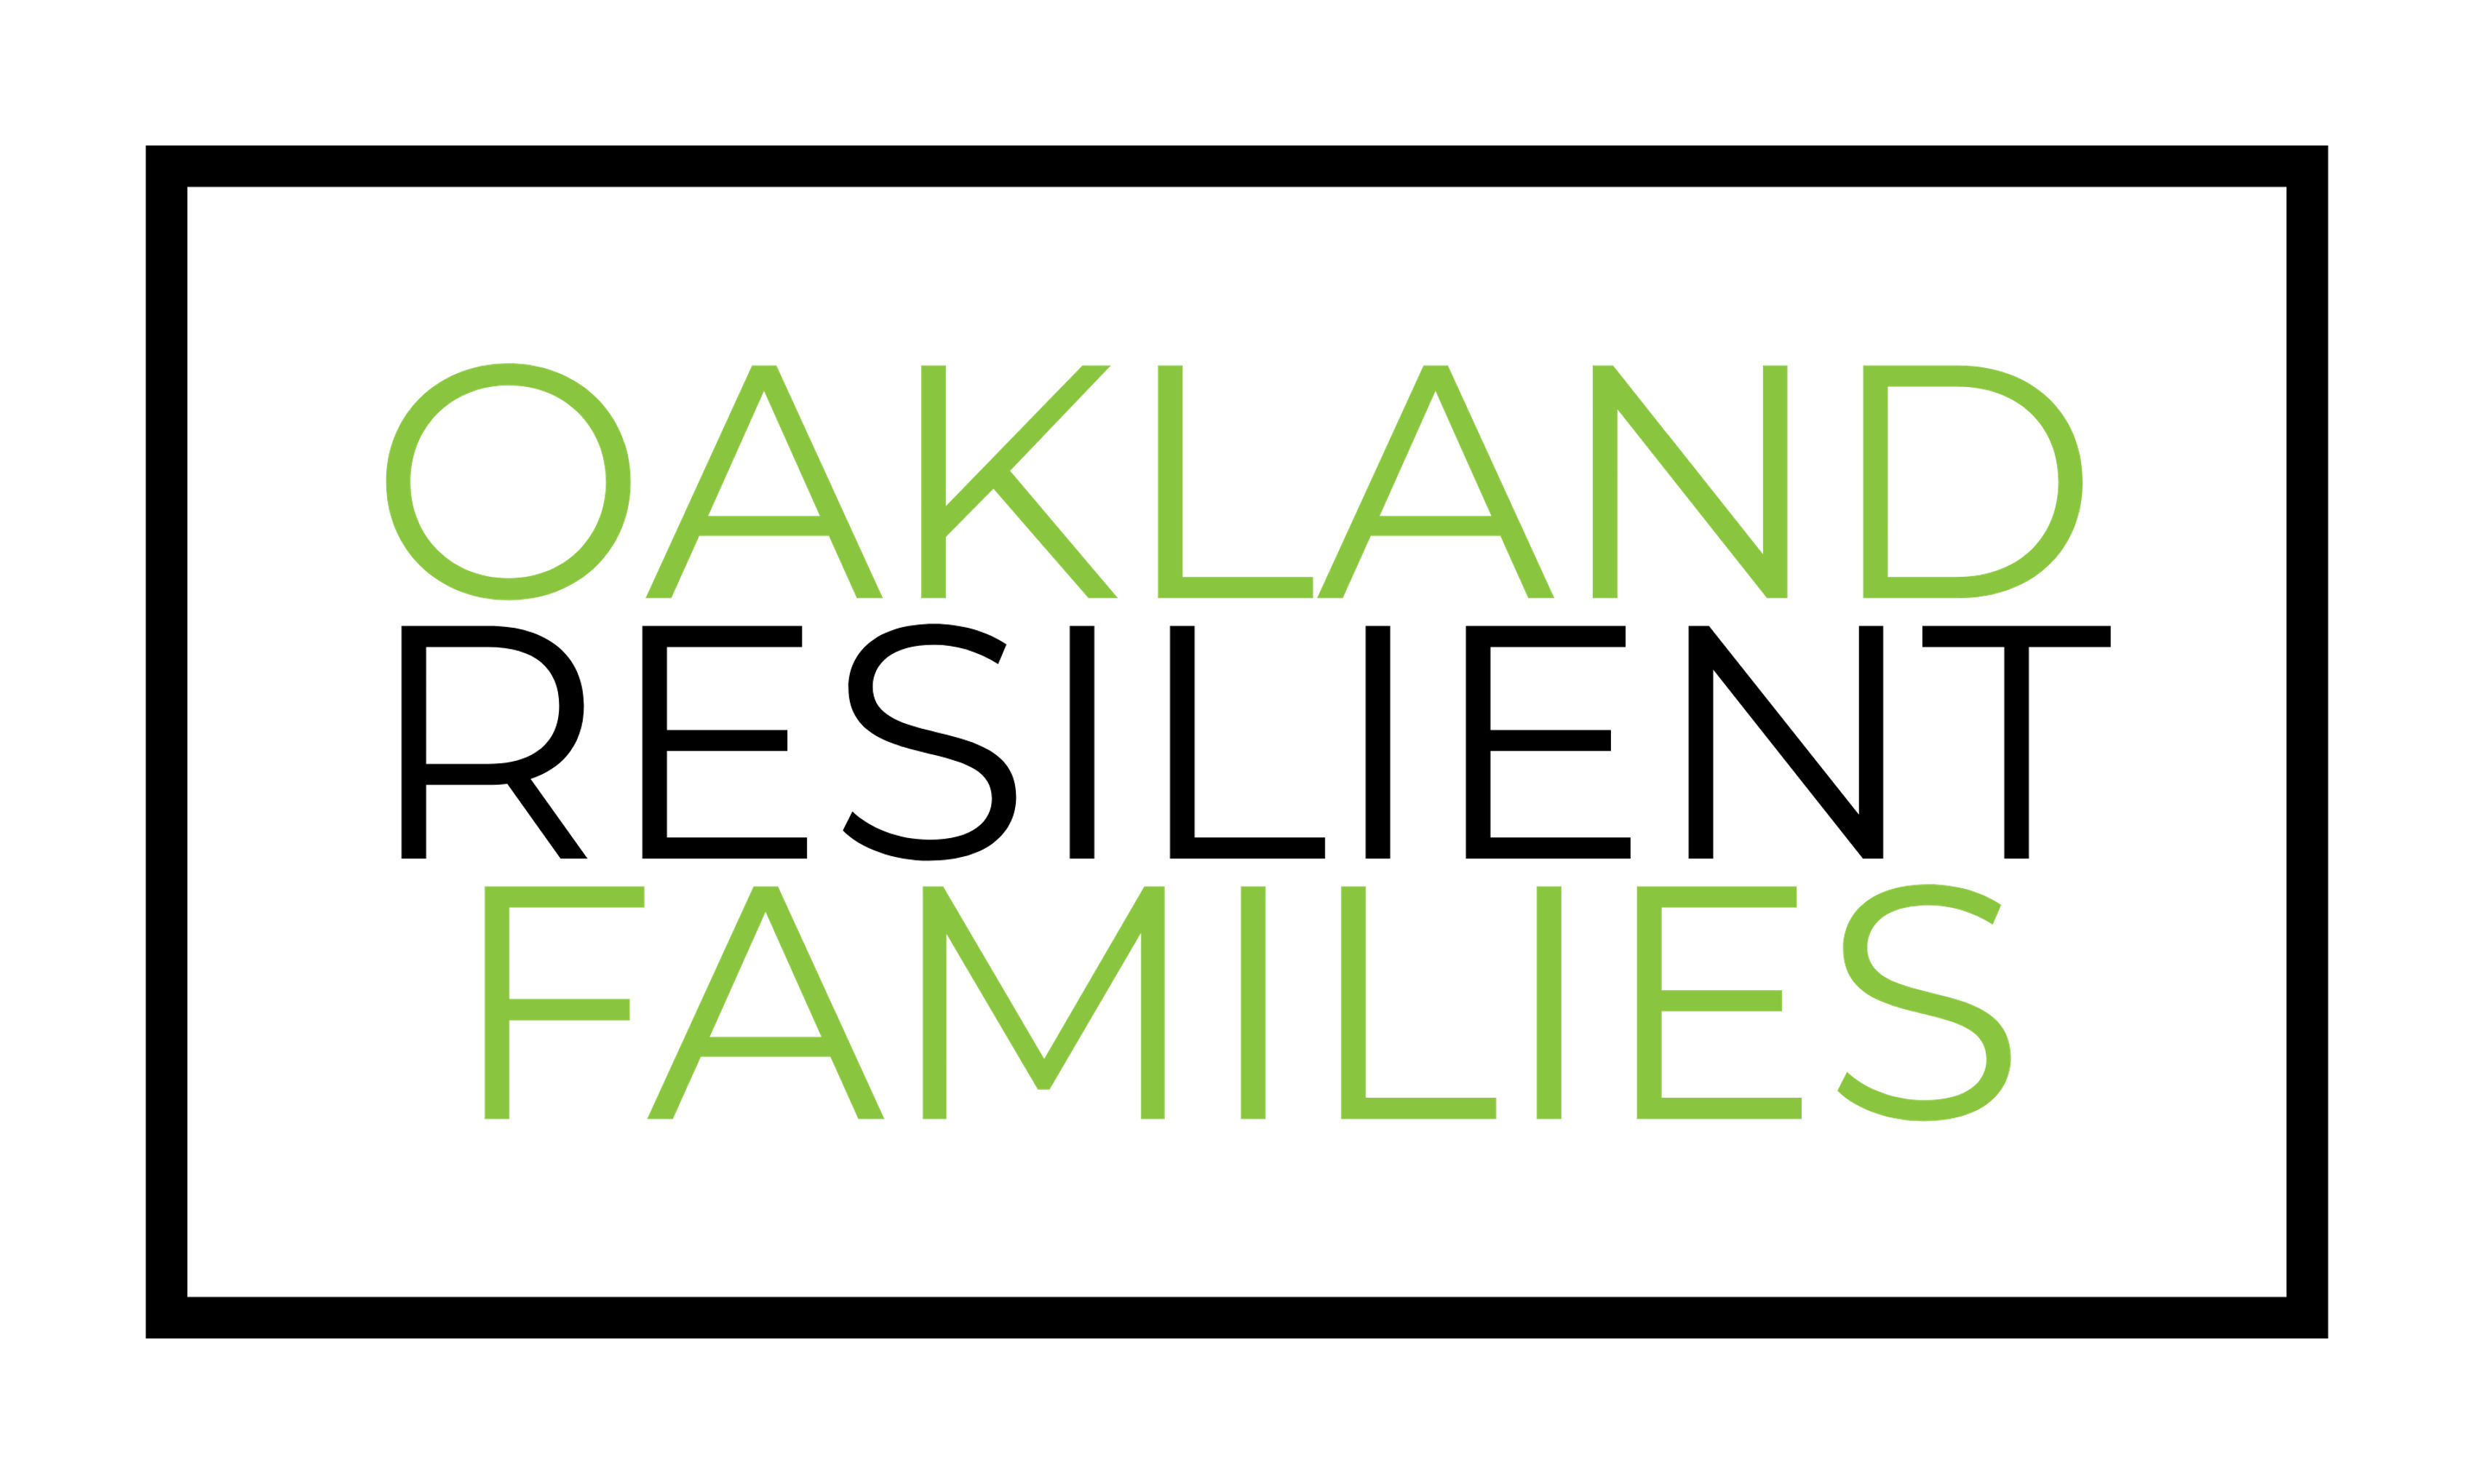 Reads Oakland Resilient Families